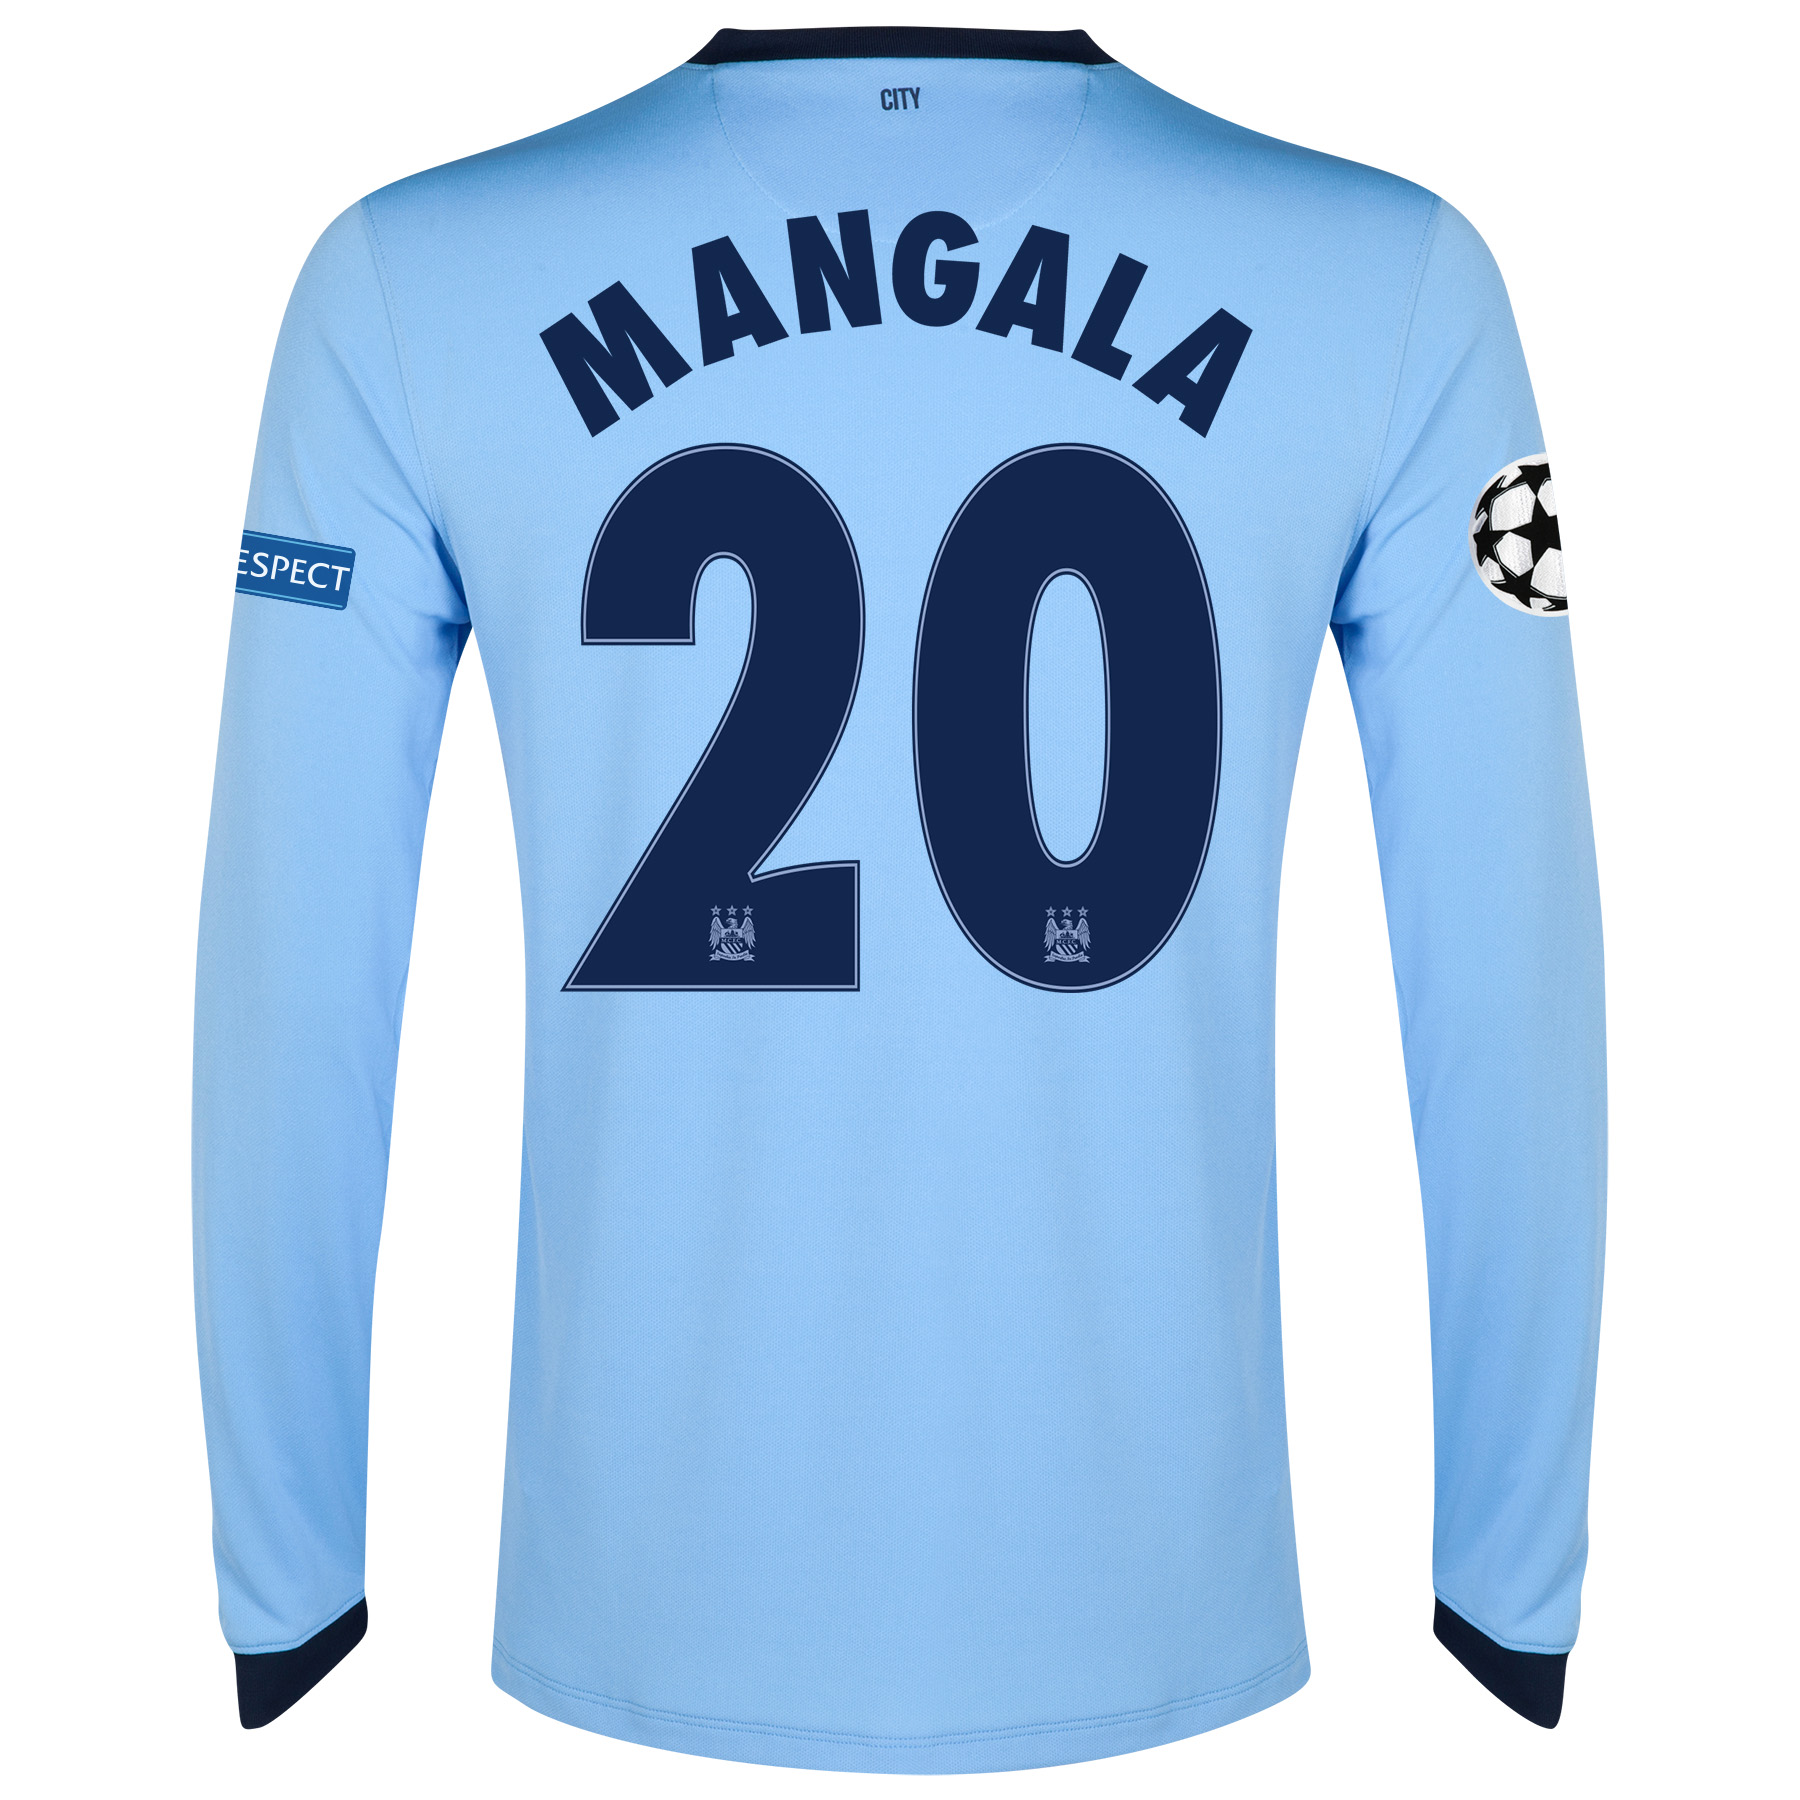 Manchester City UEFA Champions League Home Shirt 2014/15 - Long Sleeve Sky Blue with Mangala 20 printing